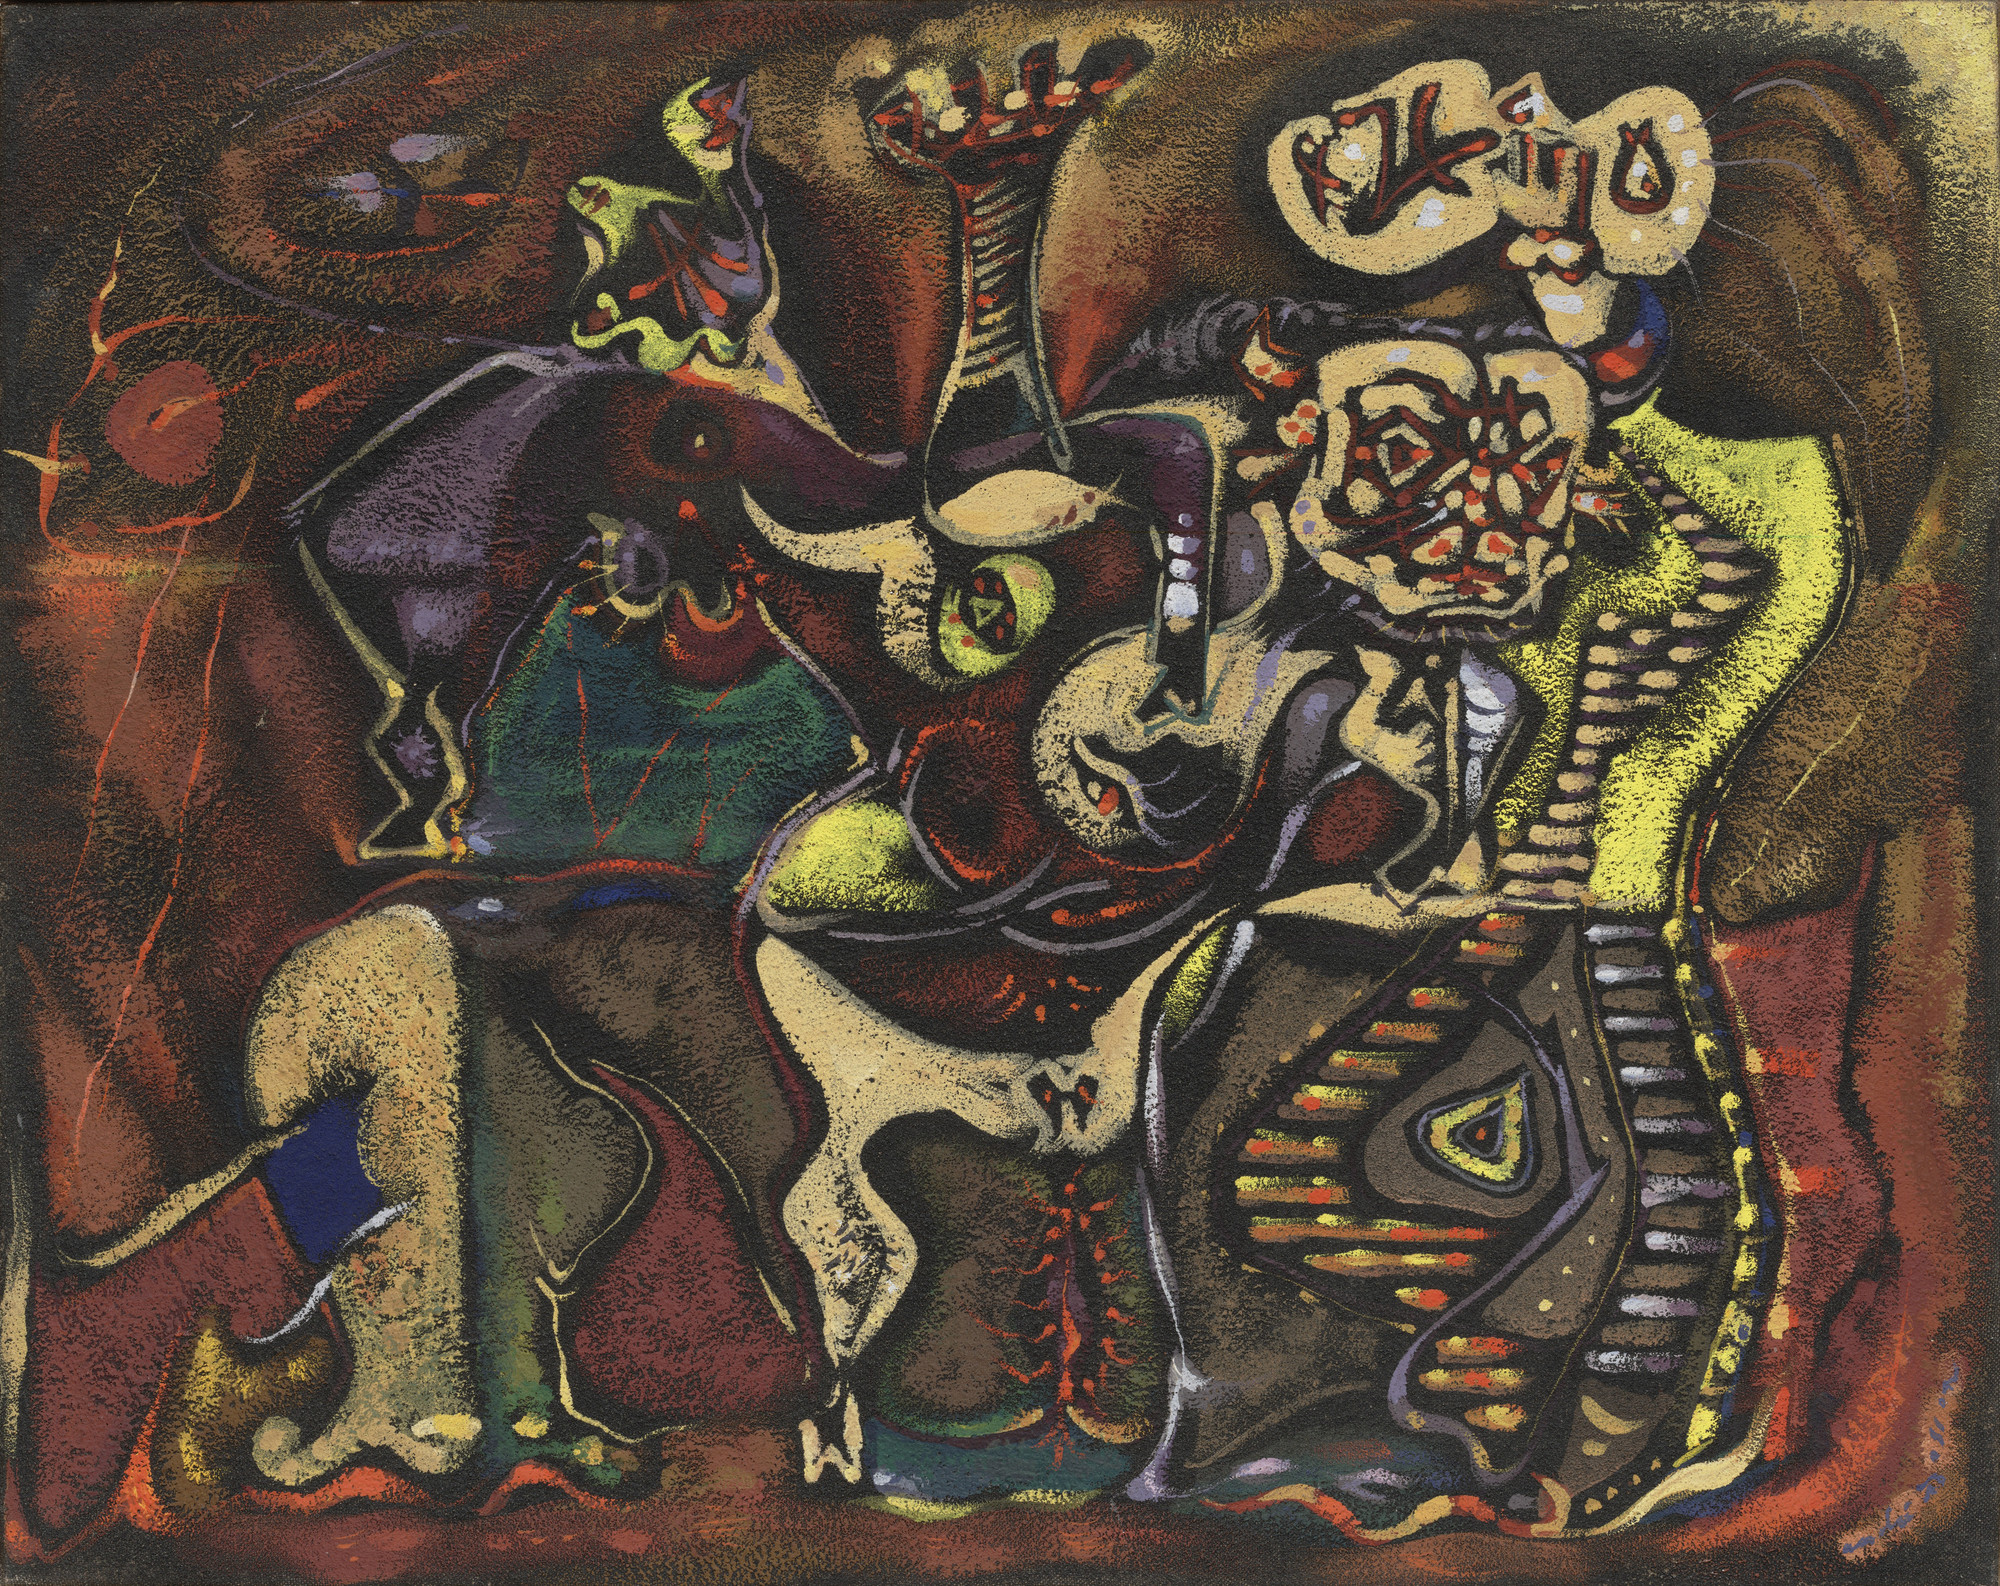 André Masson. Pasiphae. 1942